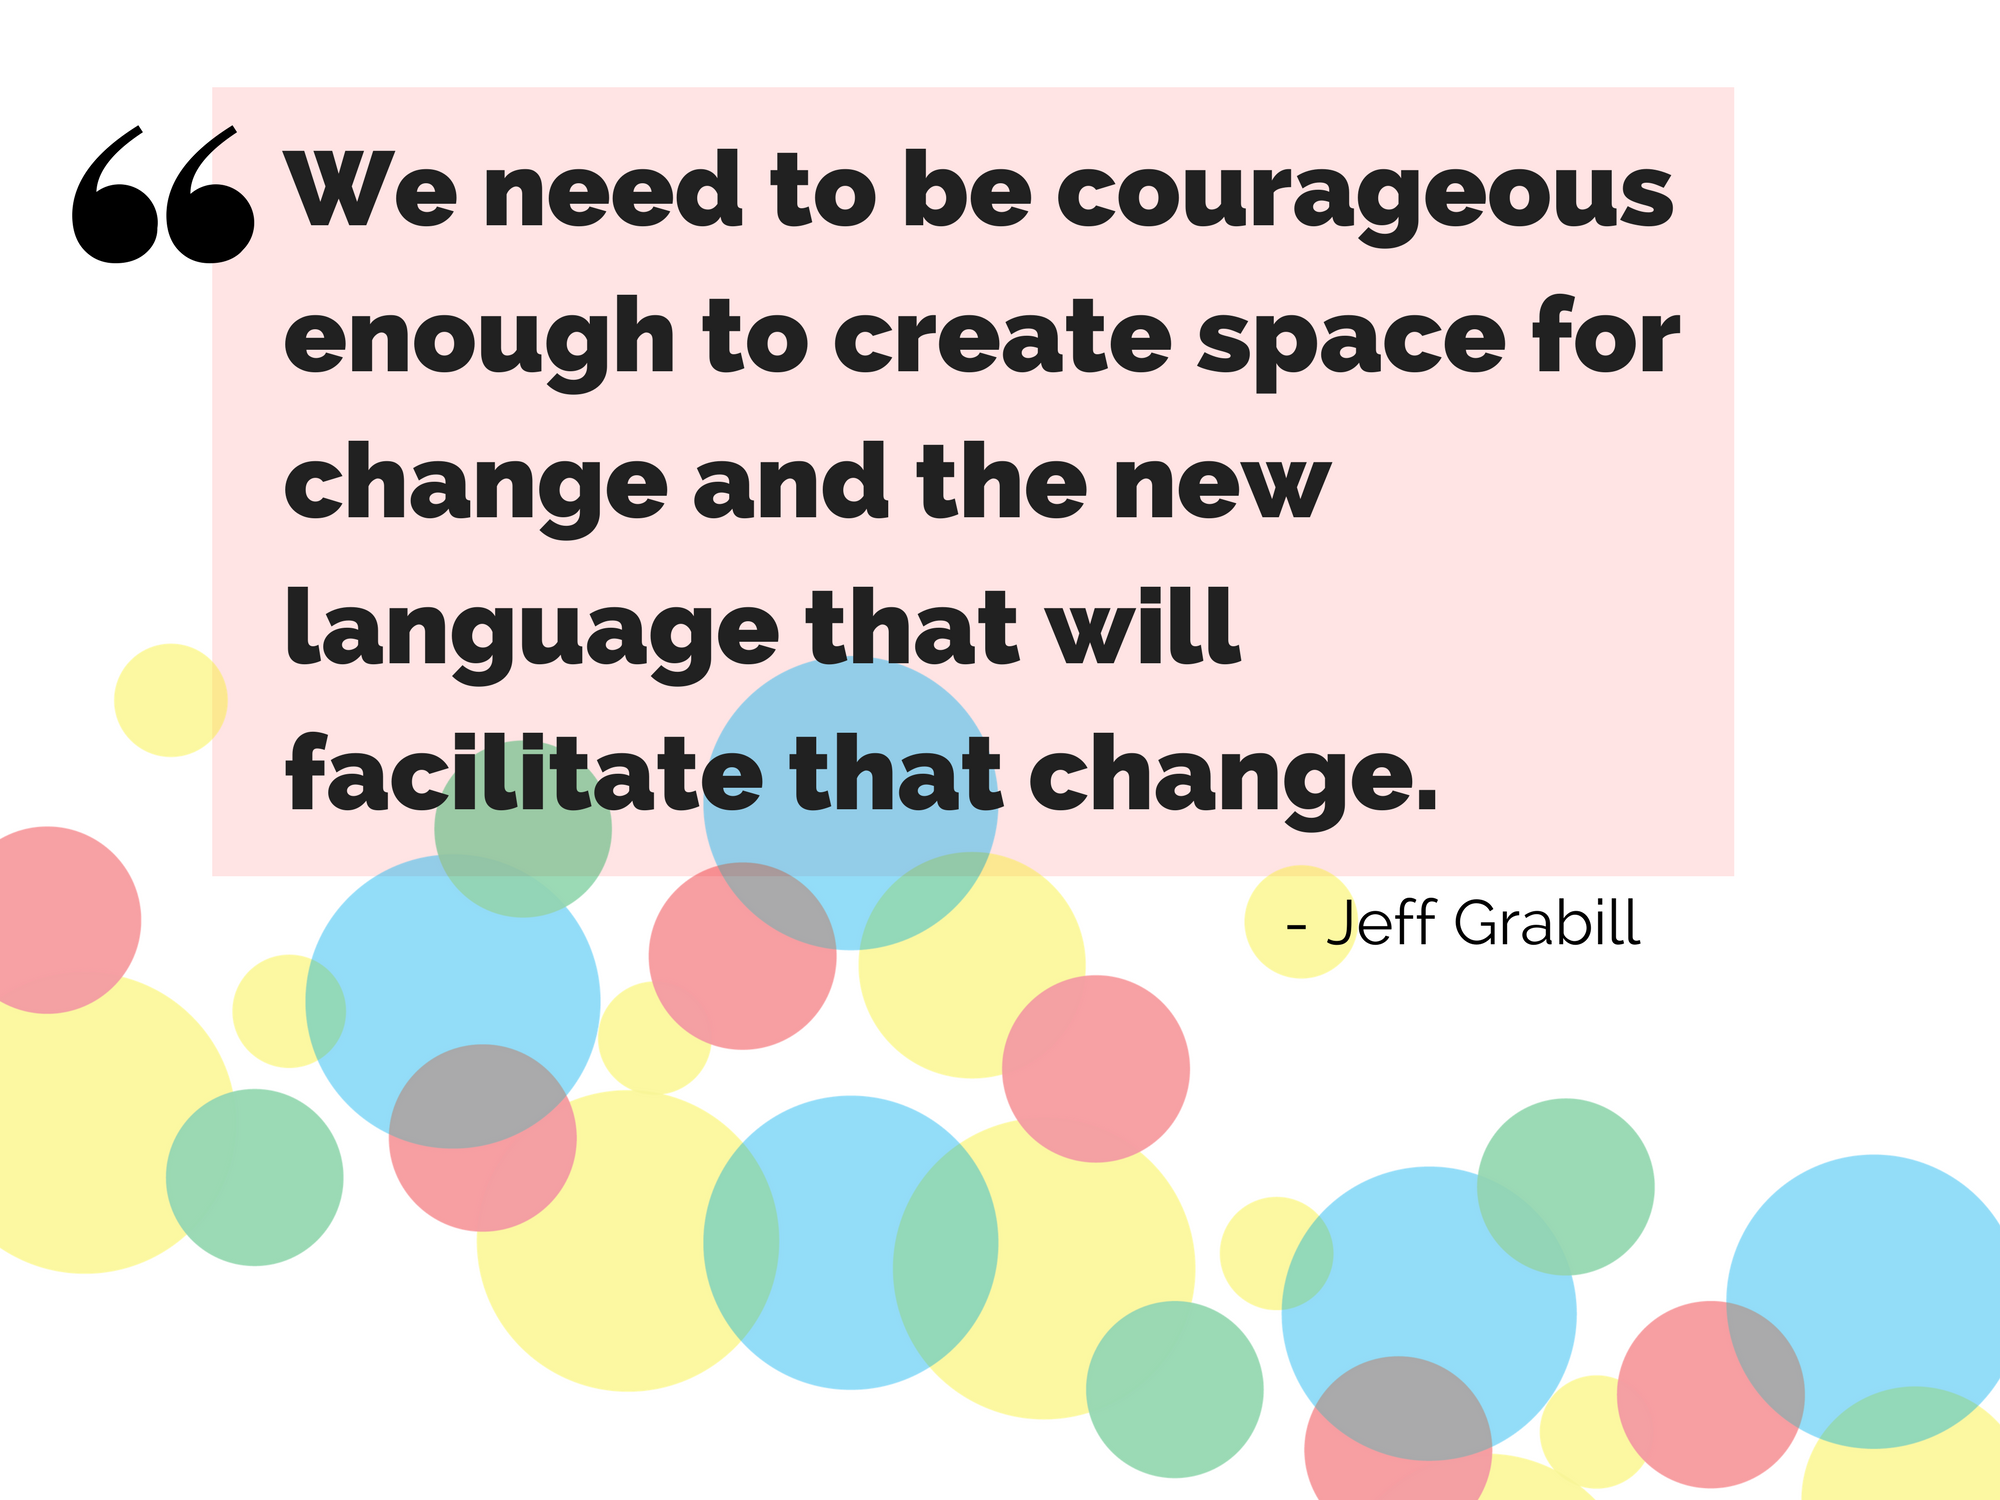 """We need to be courageous enough to create space for change and the new language that will facilitate that change."" - Jeff Grabill"